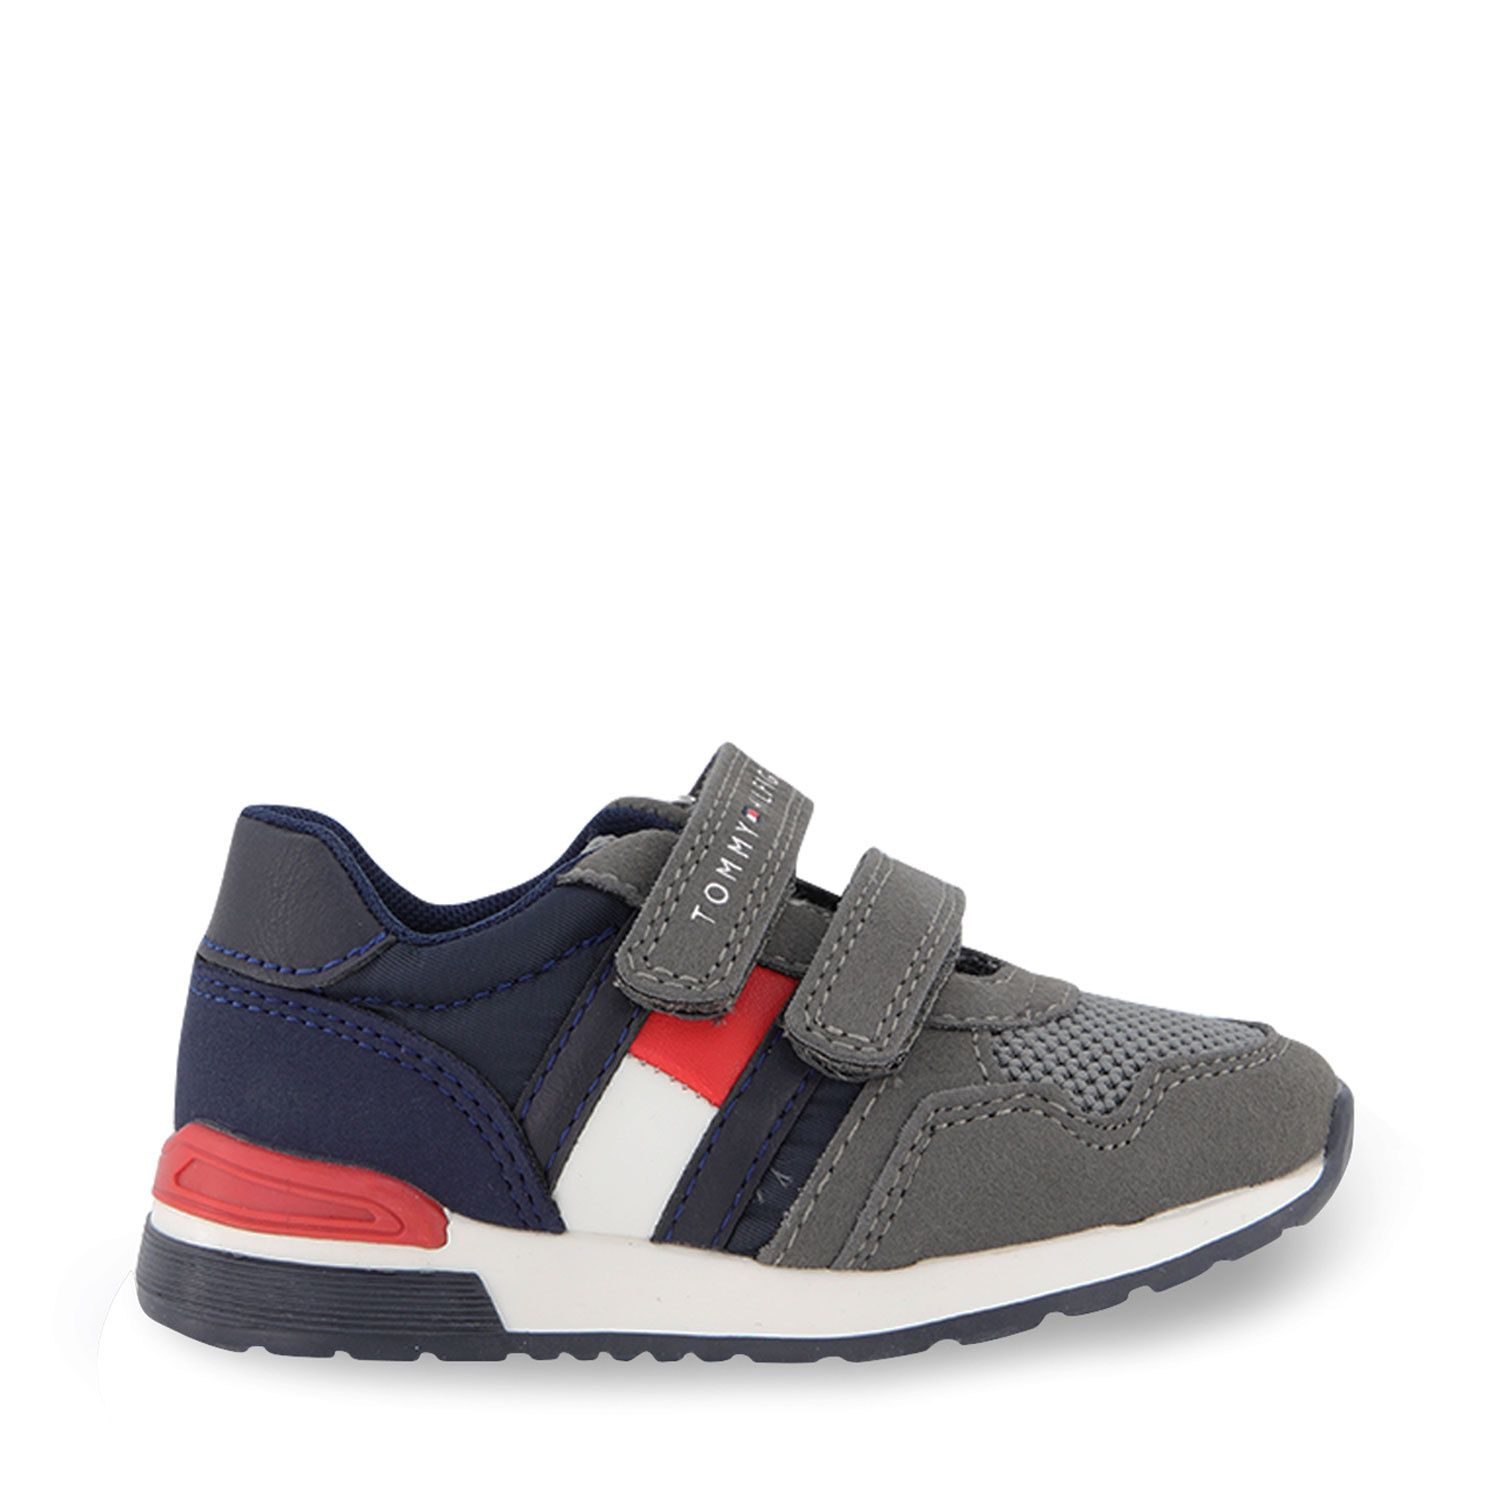 Picture of Tommy Hilfiger 30930 kids sneakers grey